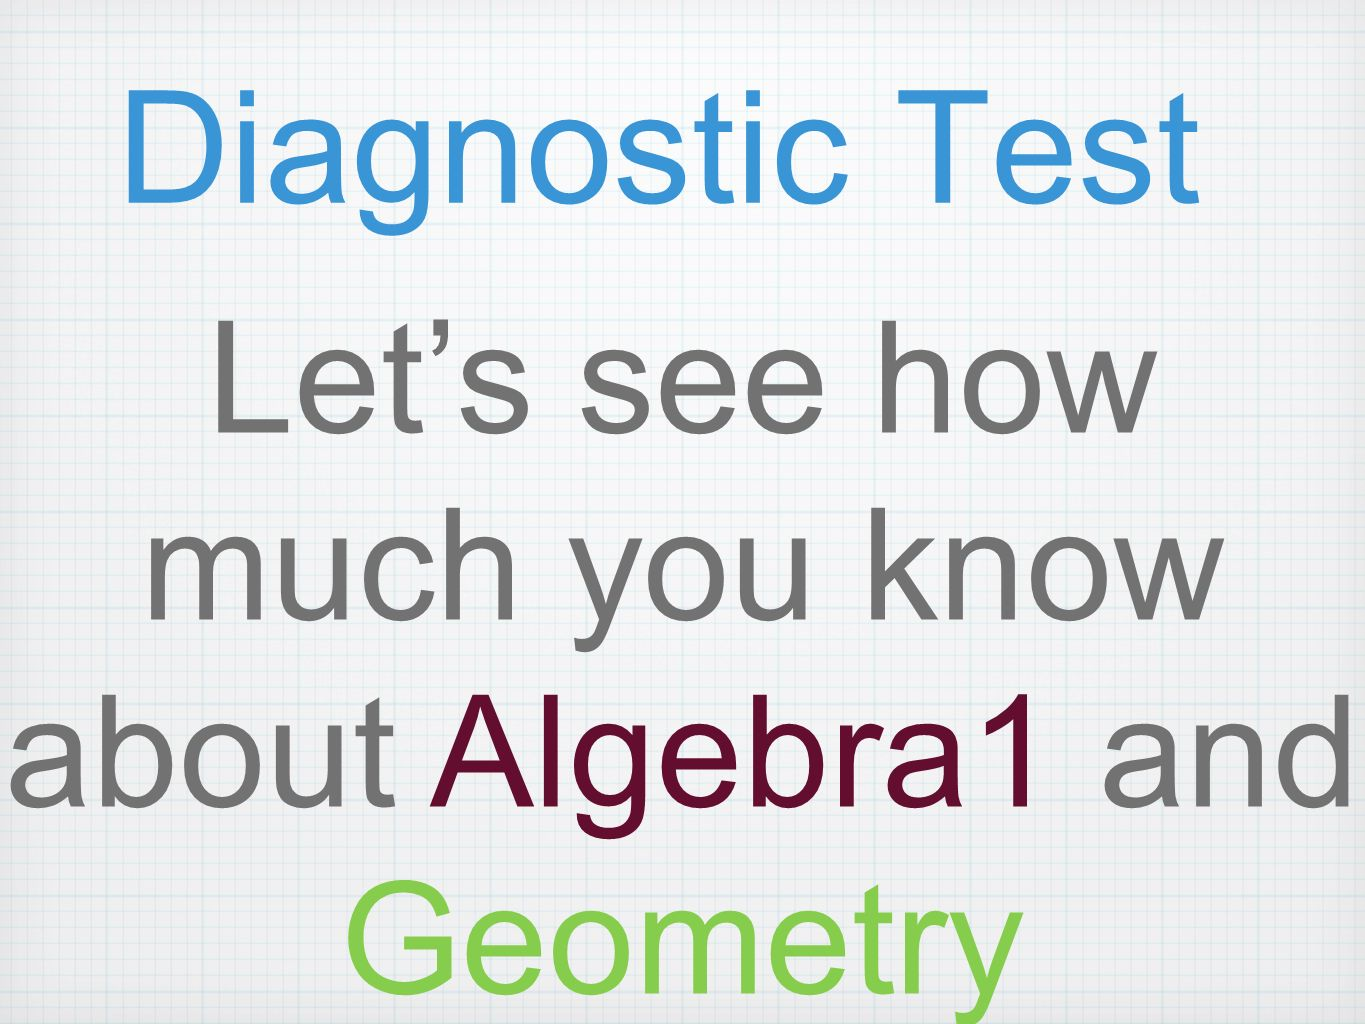 Diagnostic Test Let's see how much you know about Algebra1 and Geometry